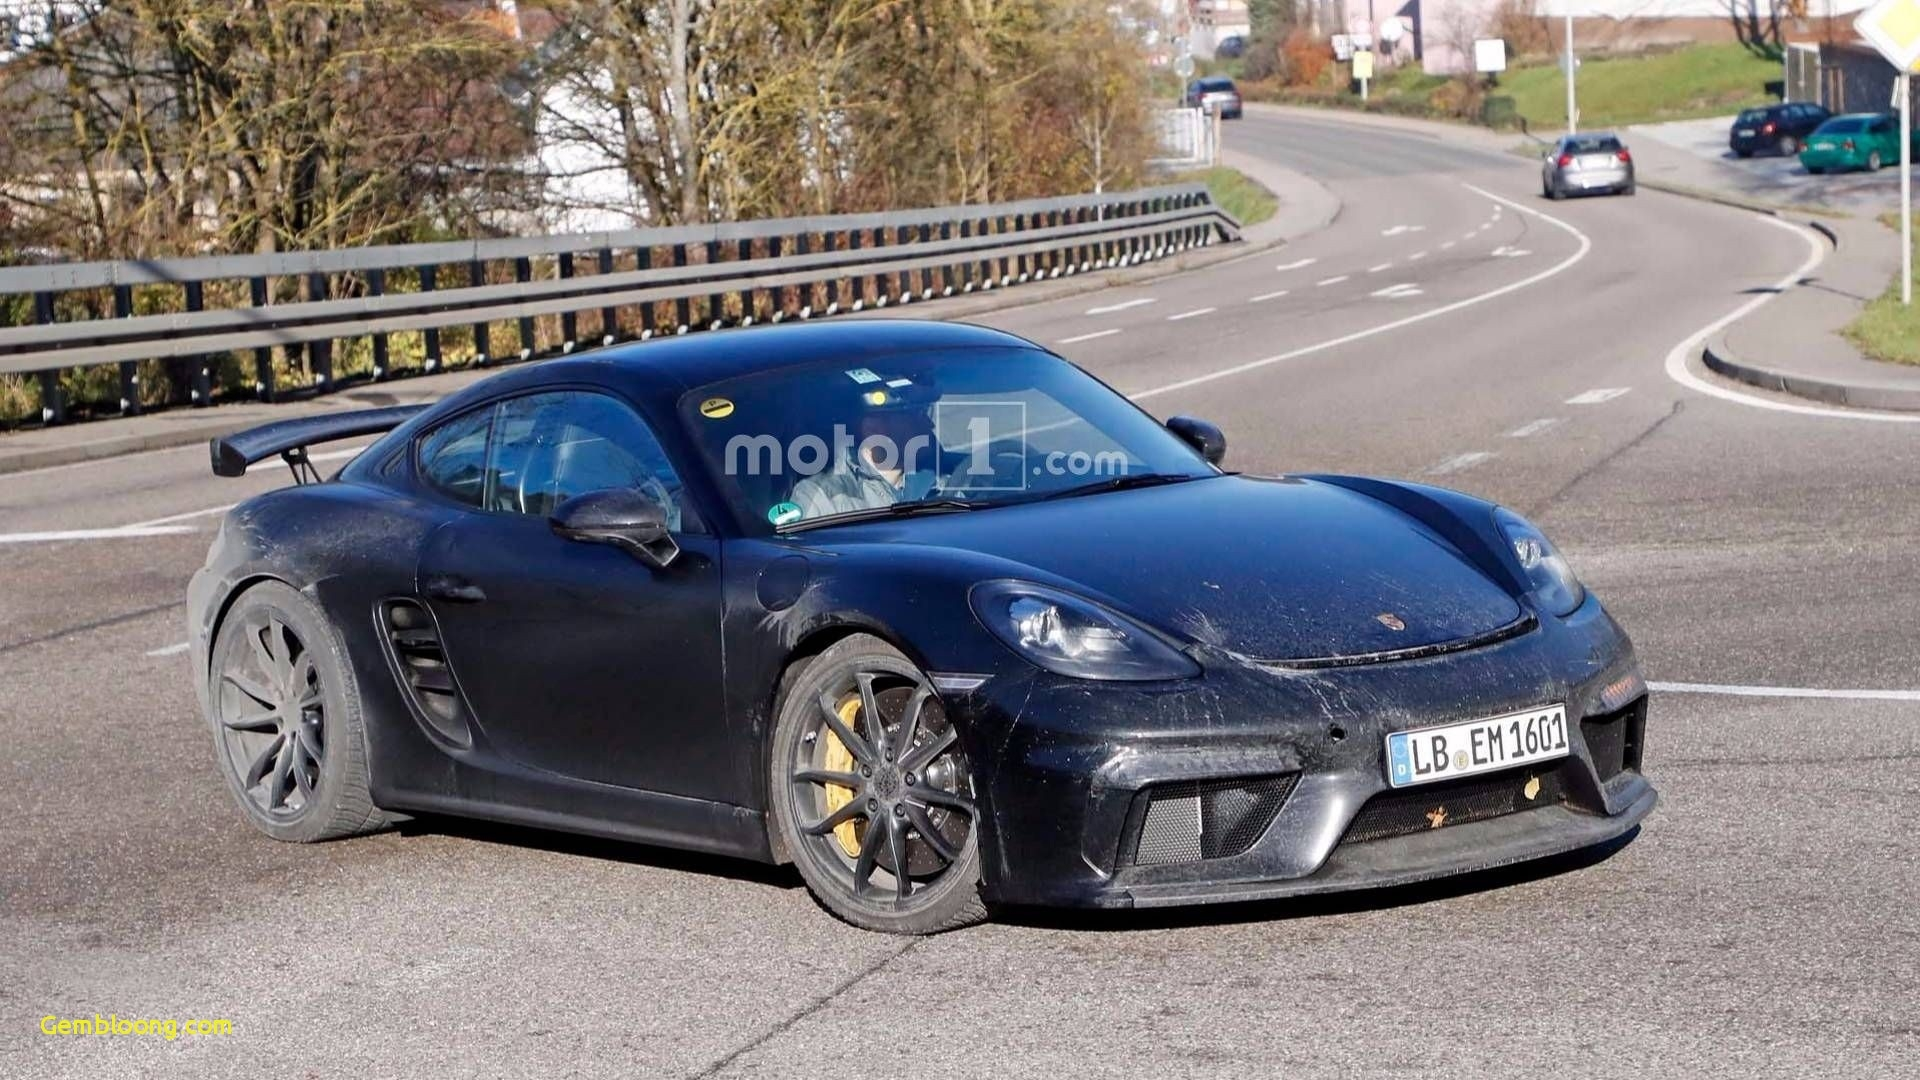 66 New 2020 Porsche Boxster Spyder Release Date and Concept